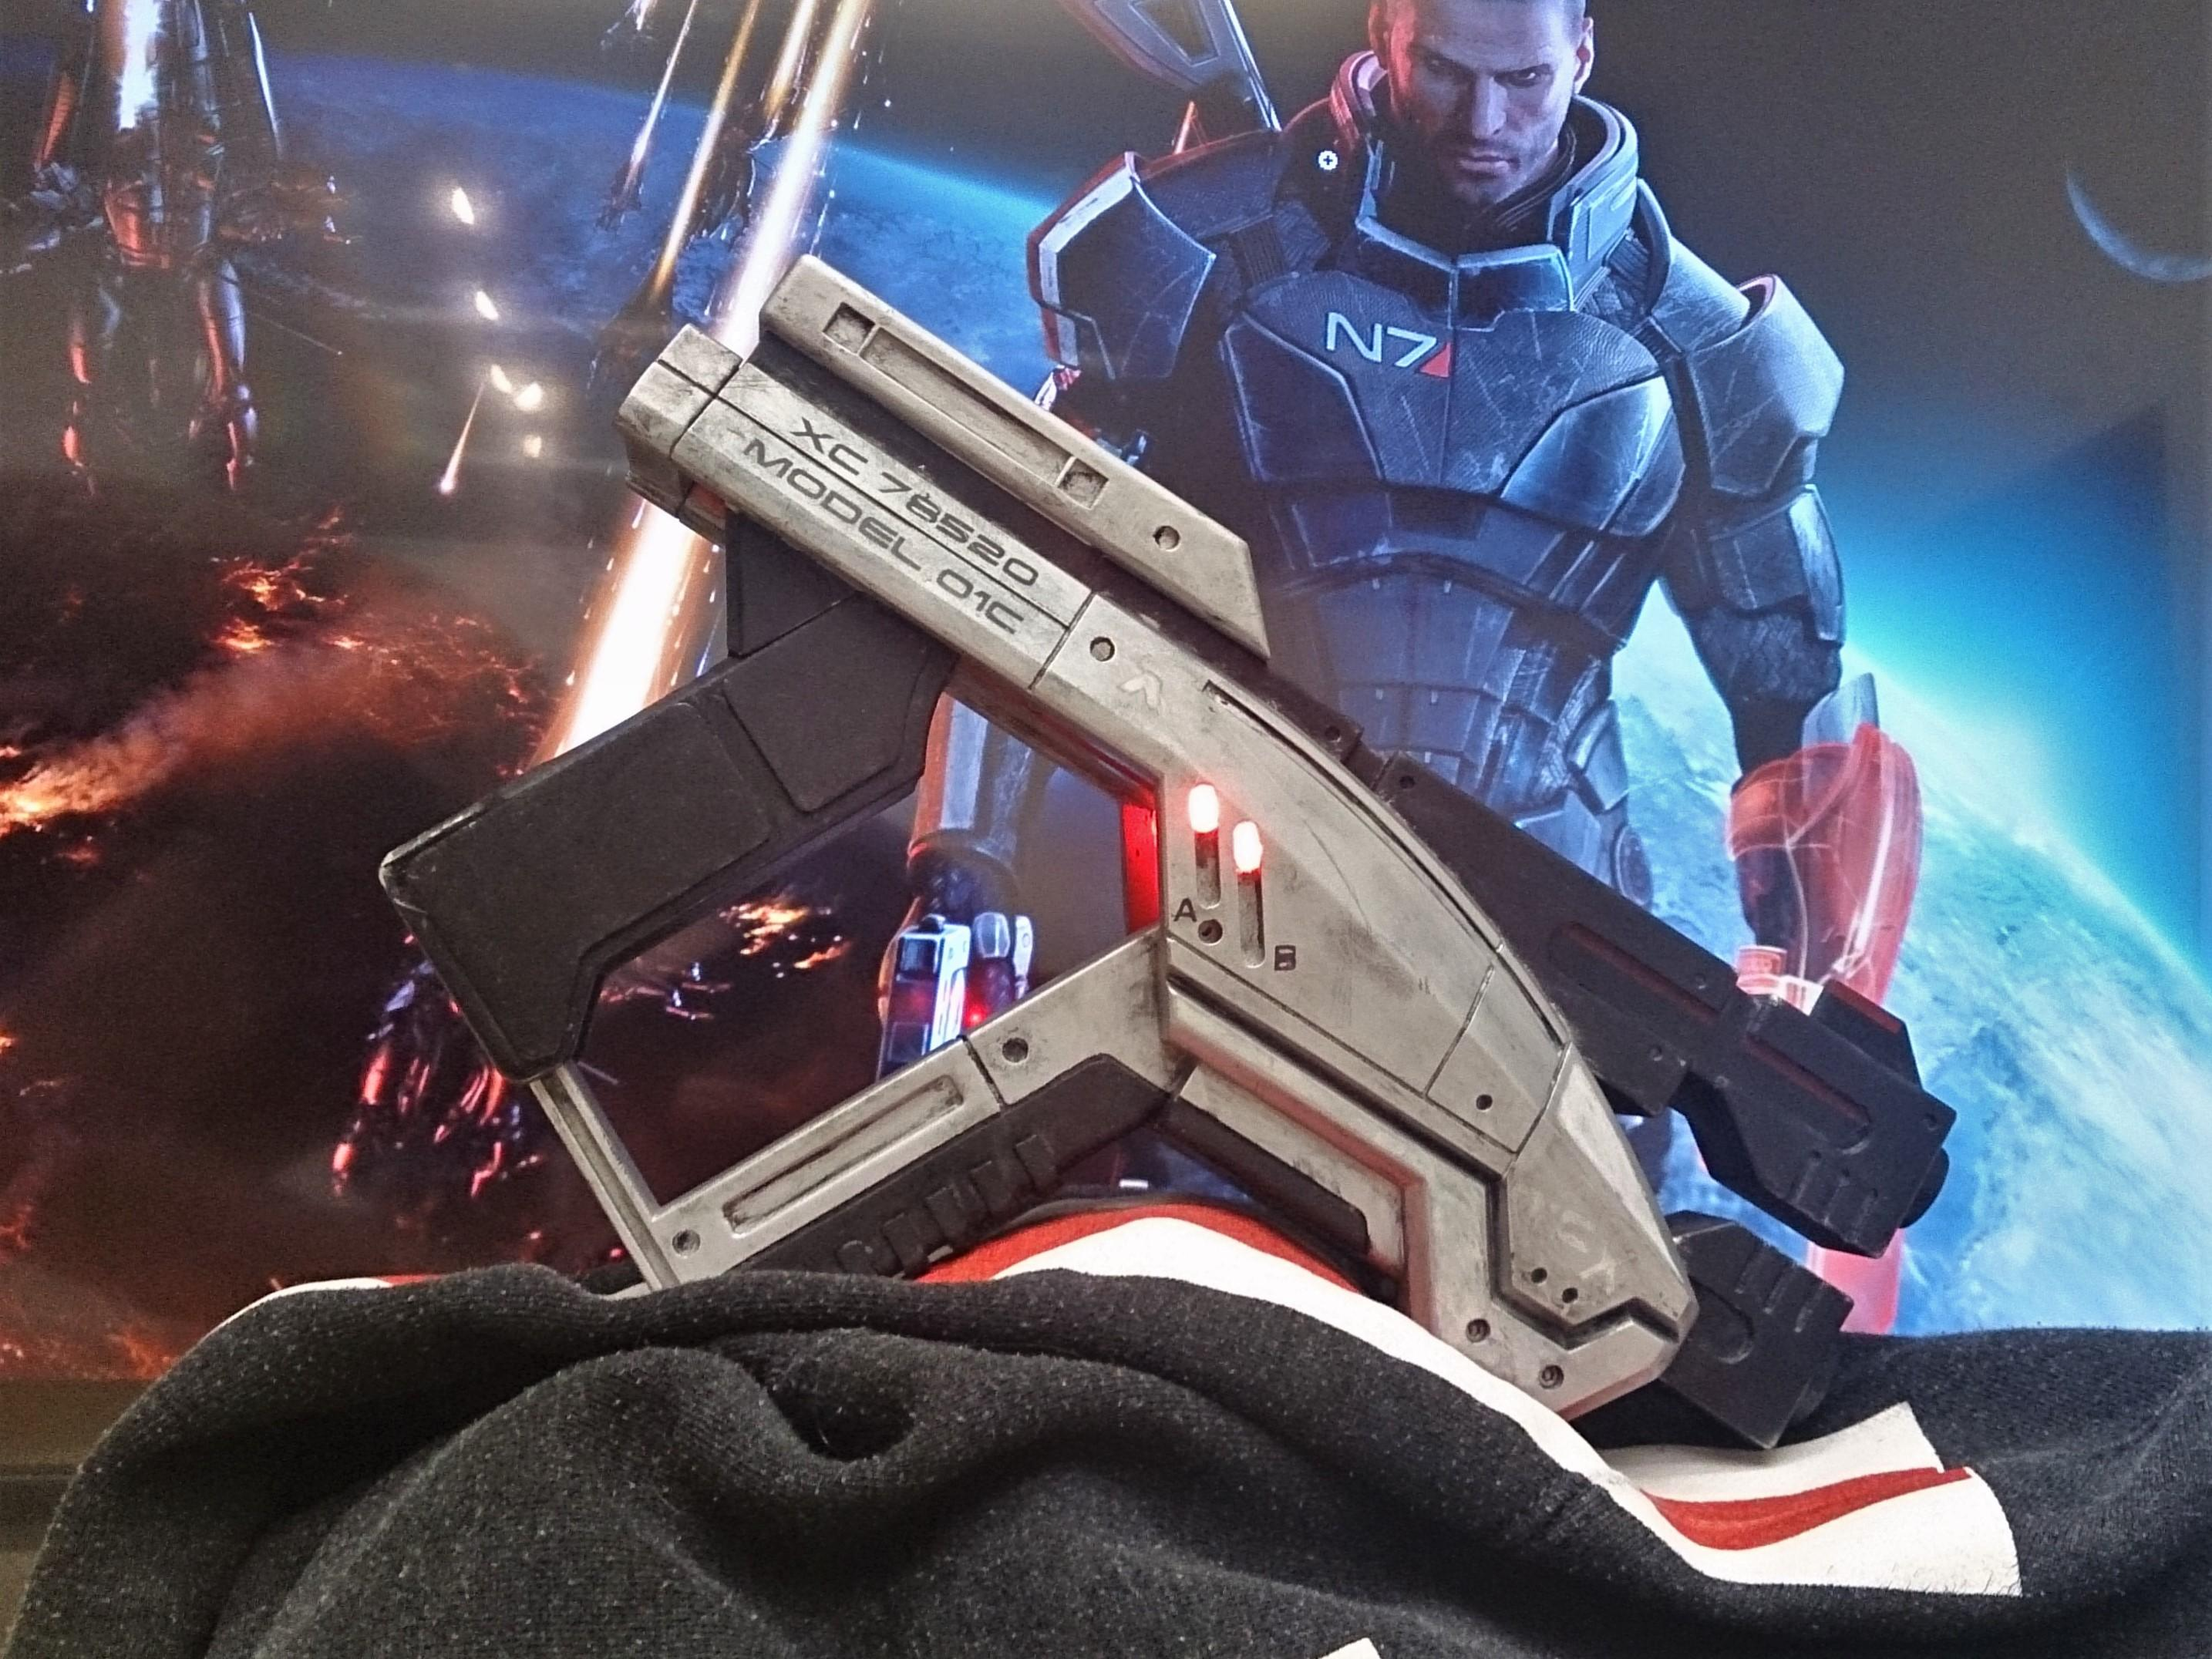 Folding Mass Effect Pistol